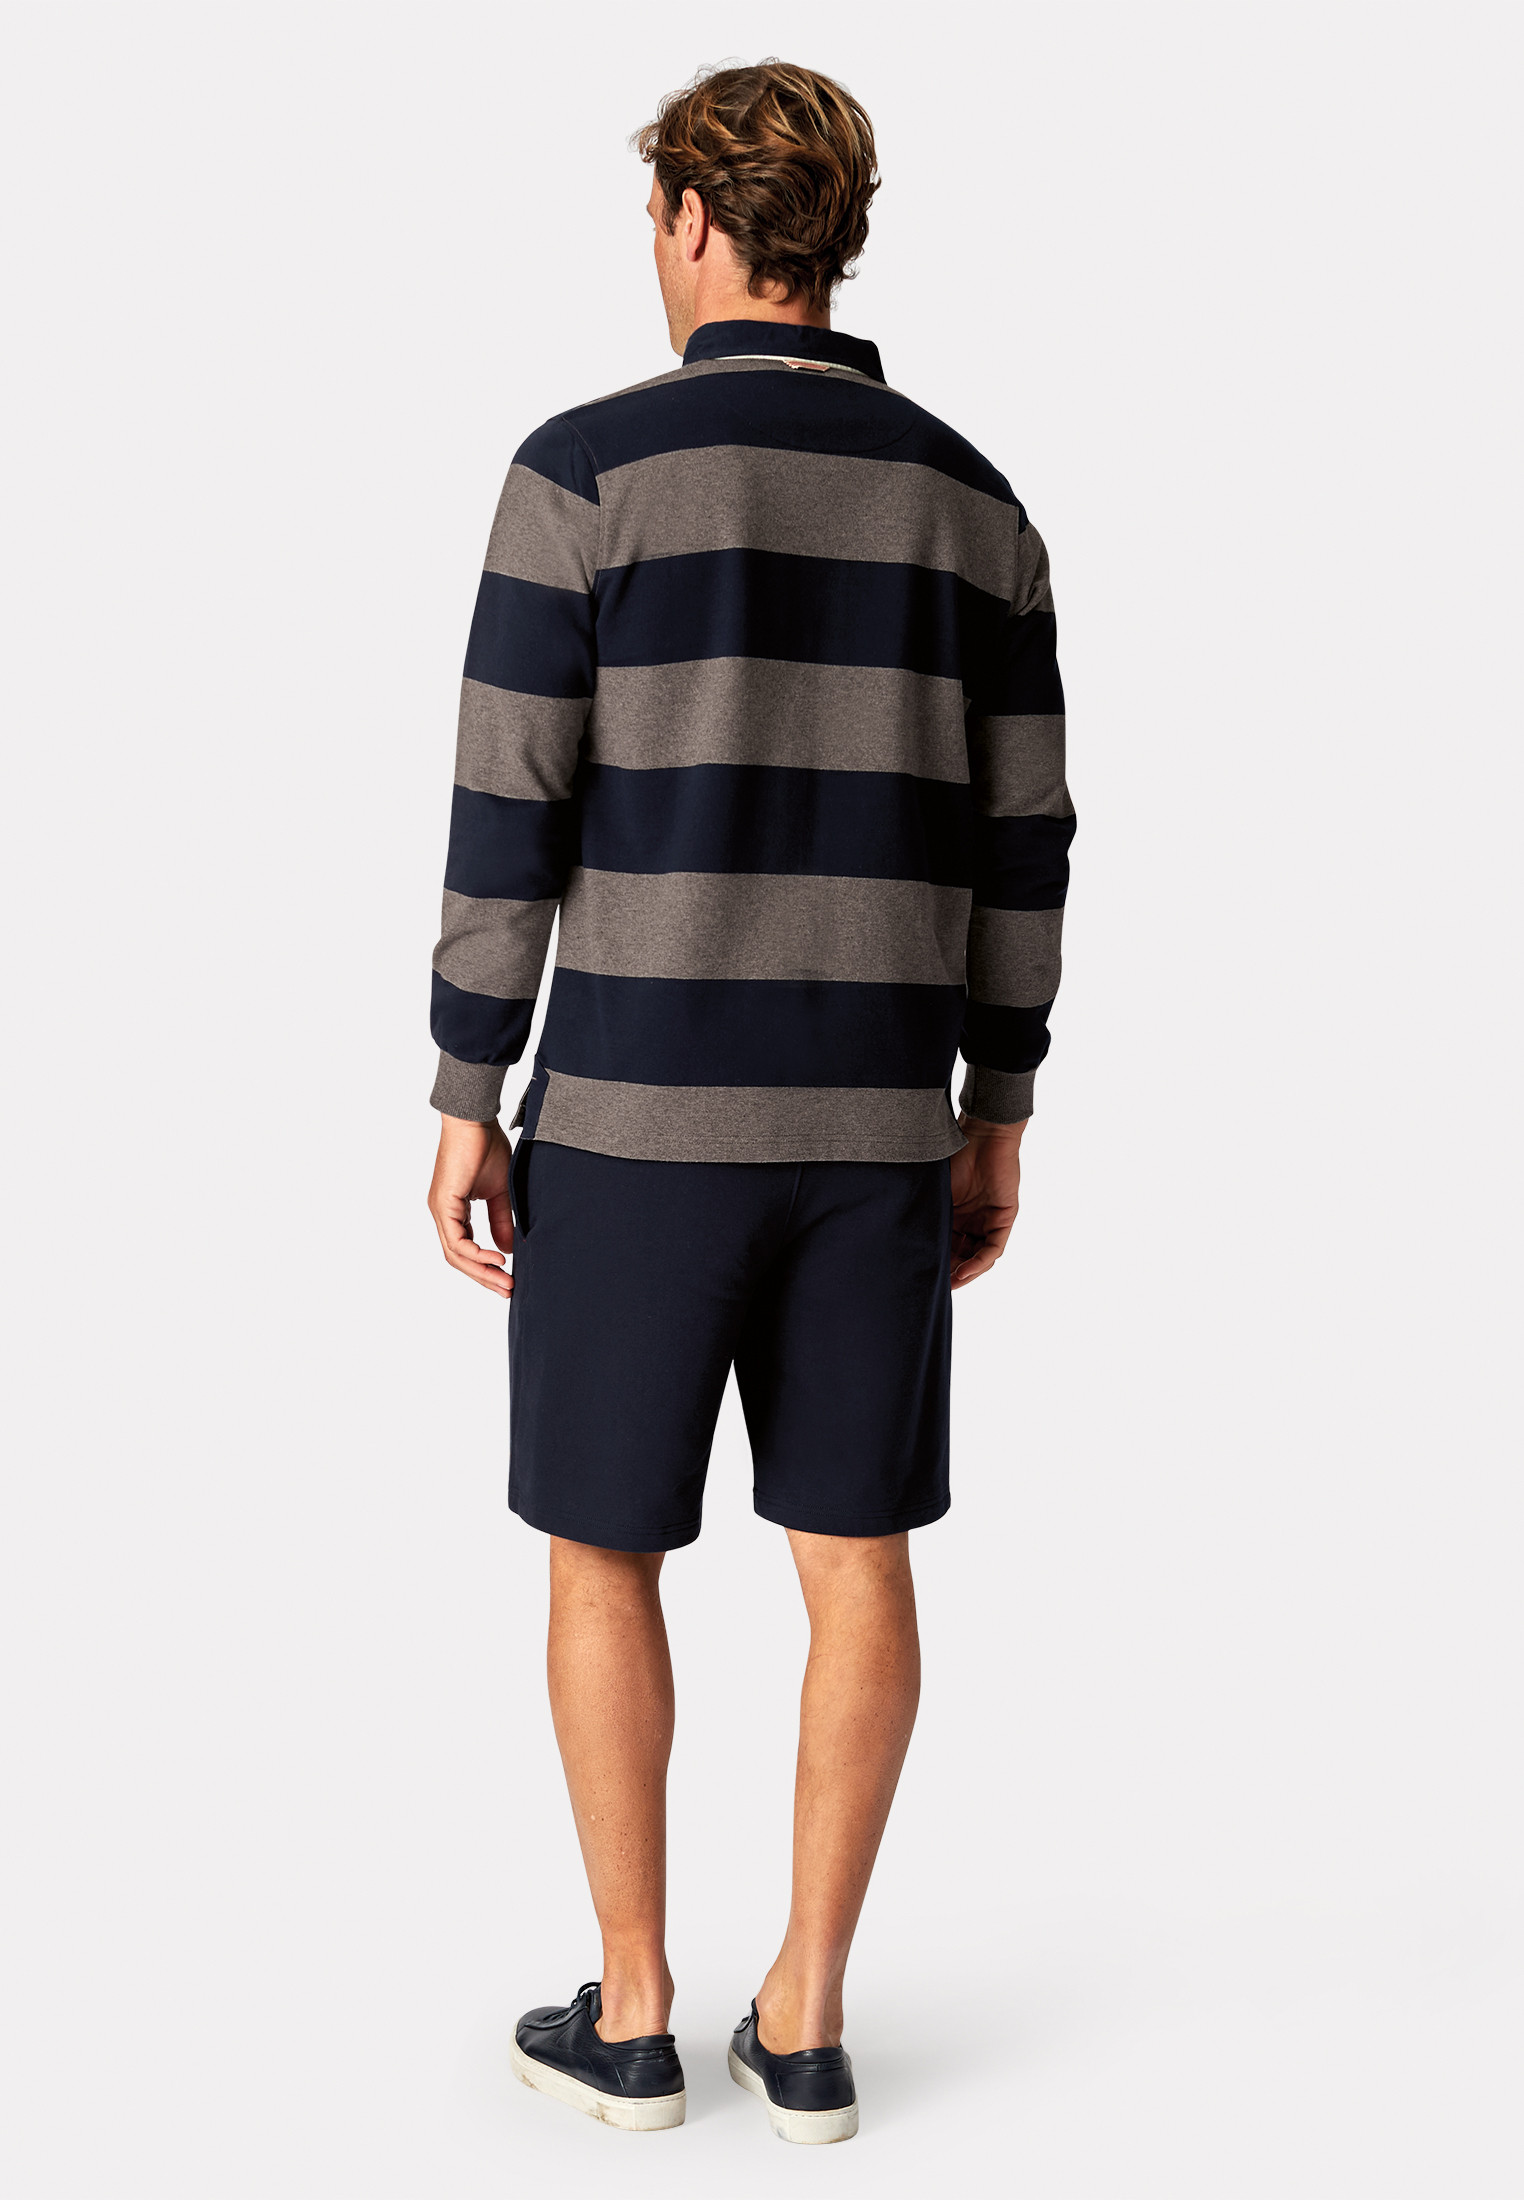 Richmond Navy and Charcoal Hoop Rugby Shirt